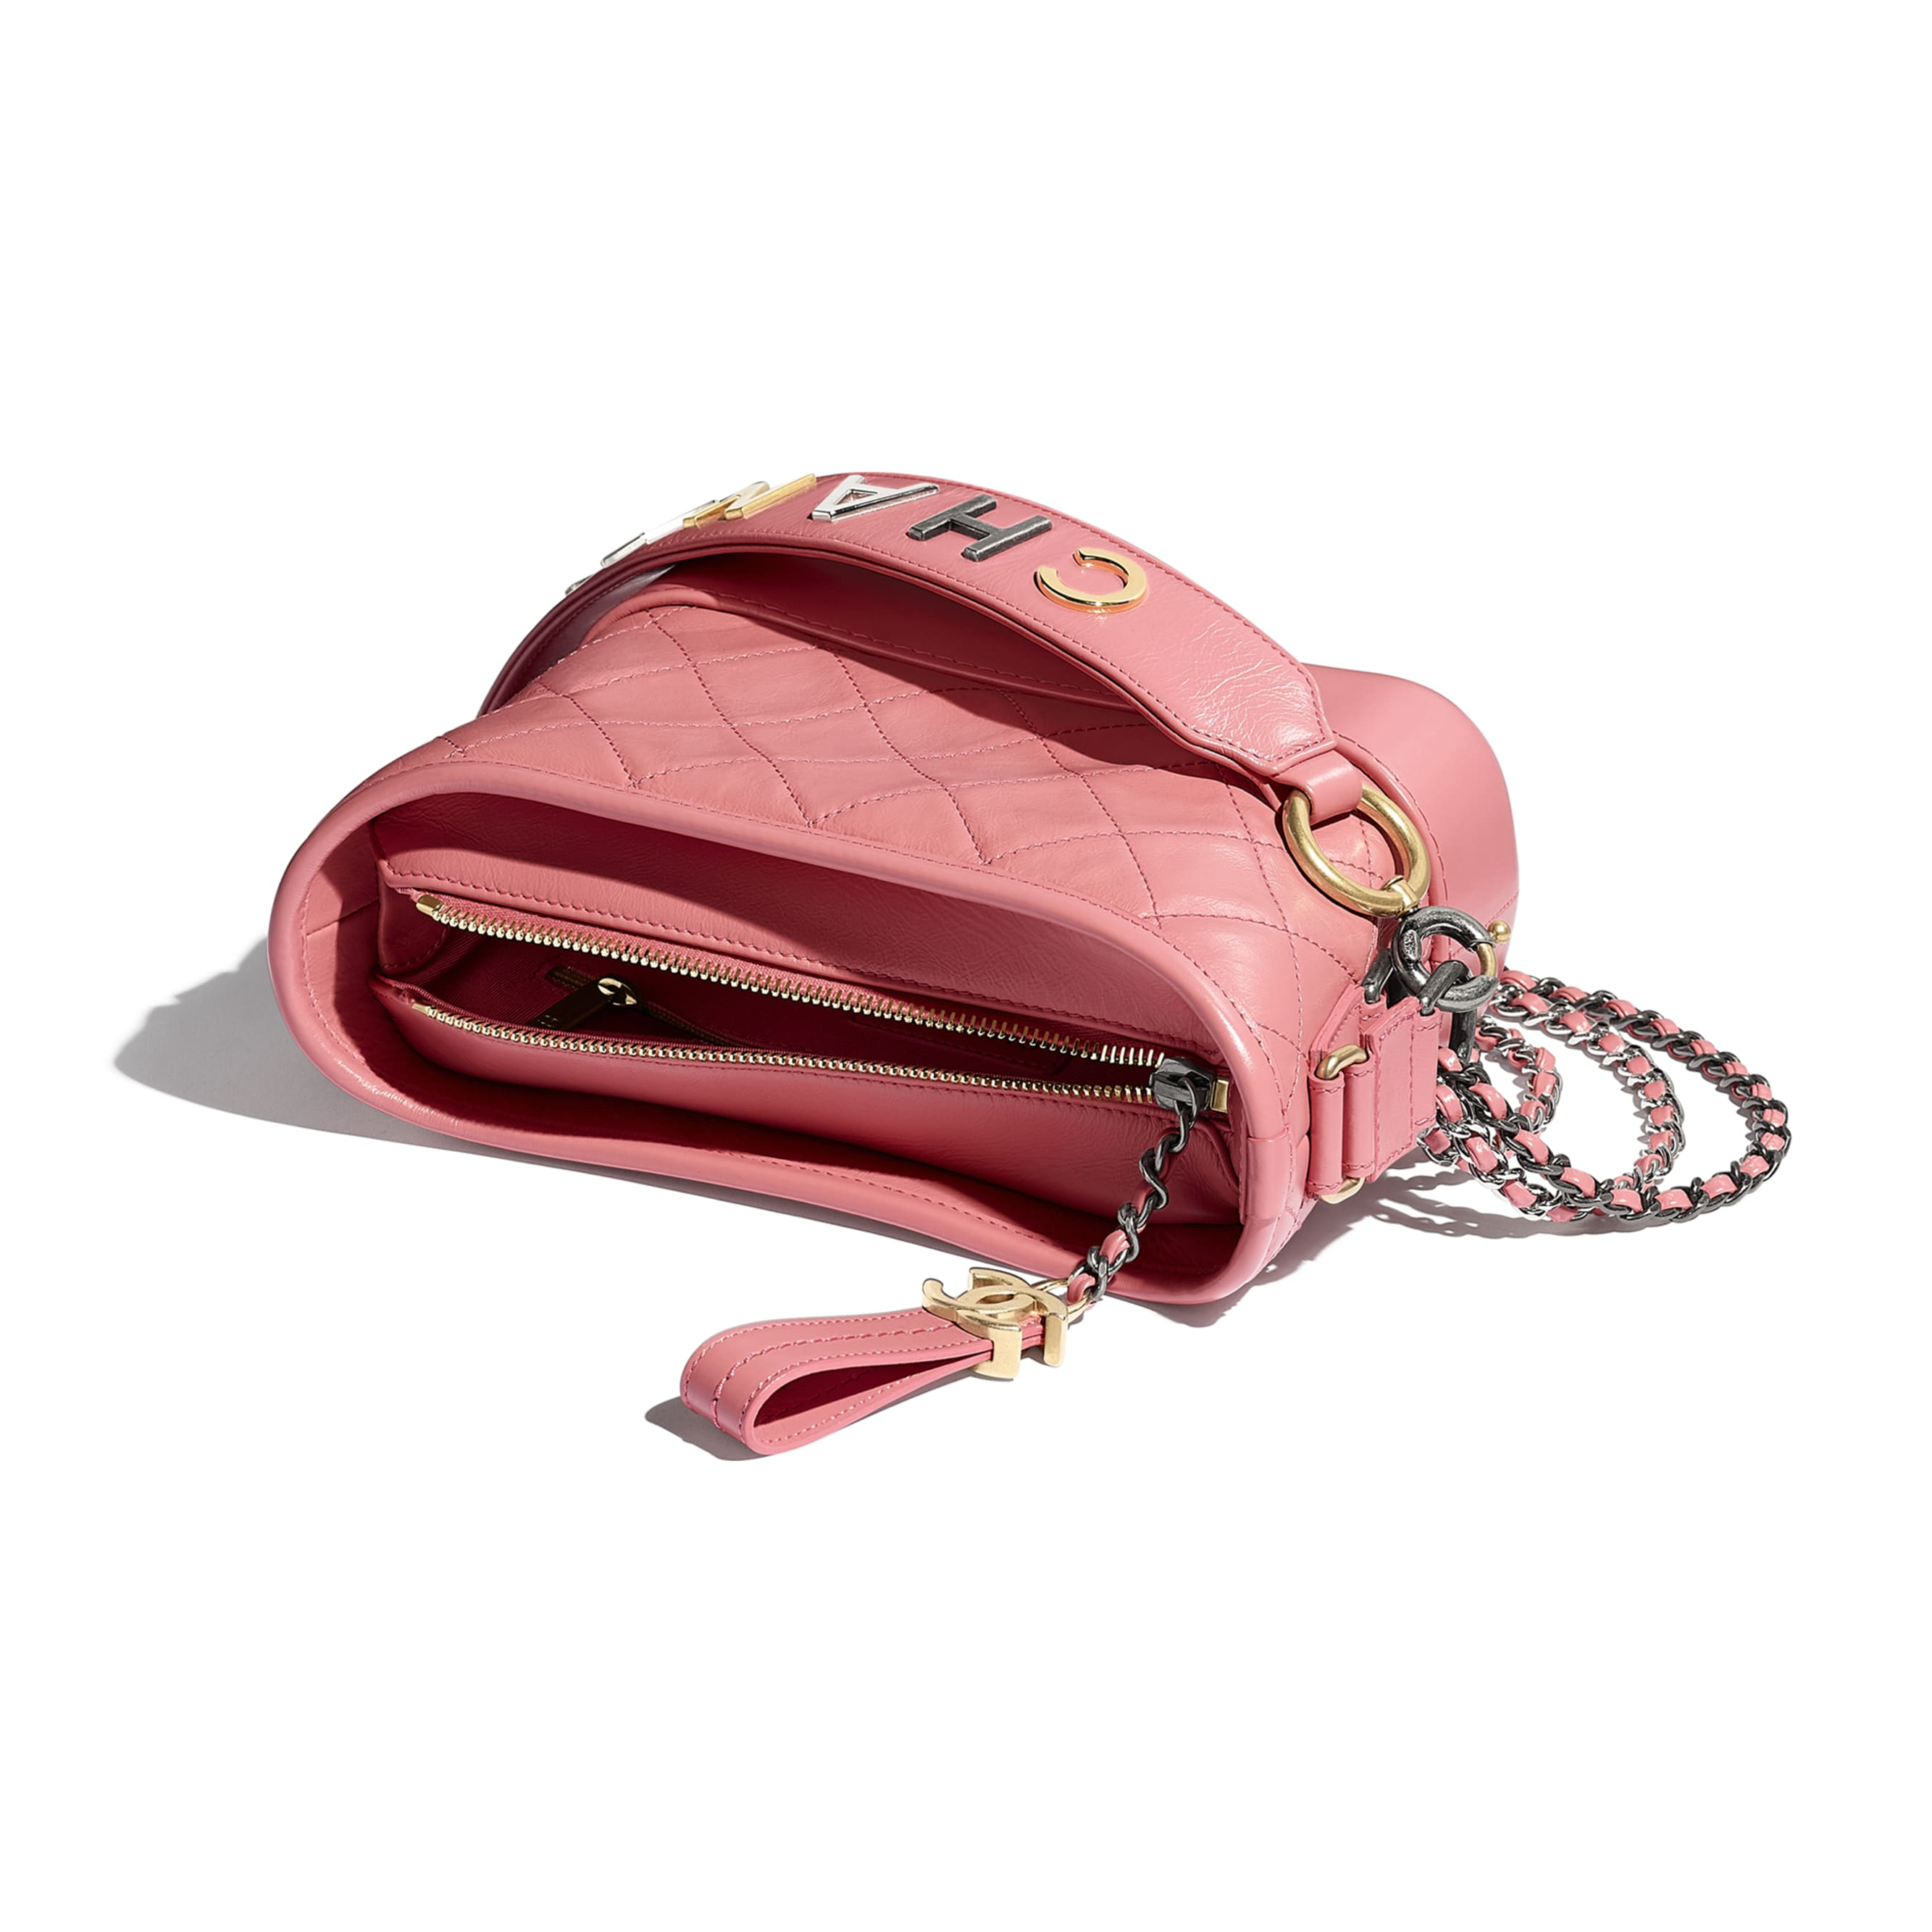 CHANEL'S GABRIELLE Small Hobo Bag - Pink - Aged Calfskin, Smooth Calfskin, Gold-Tone & Silver-Tone Metal - Other view - see standard sized version